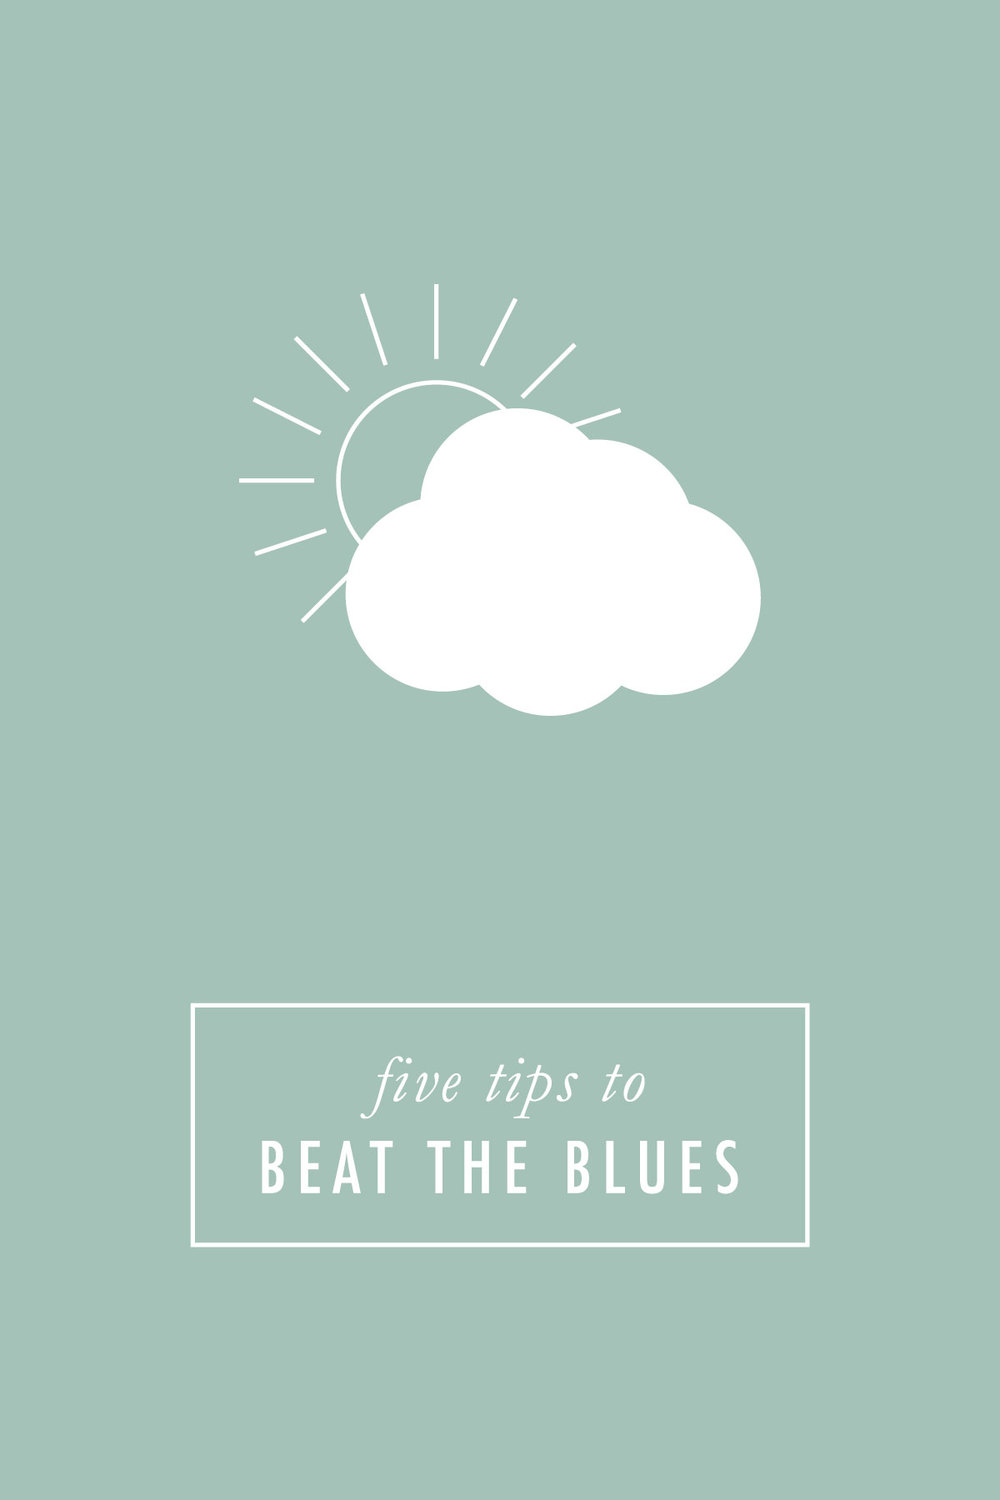 5 Tips to Beat the Blues | That's Pretty Ace